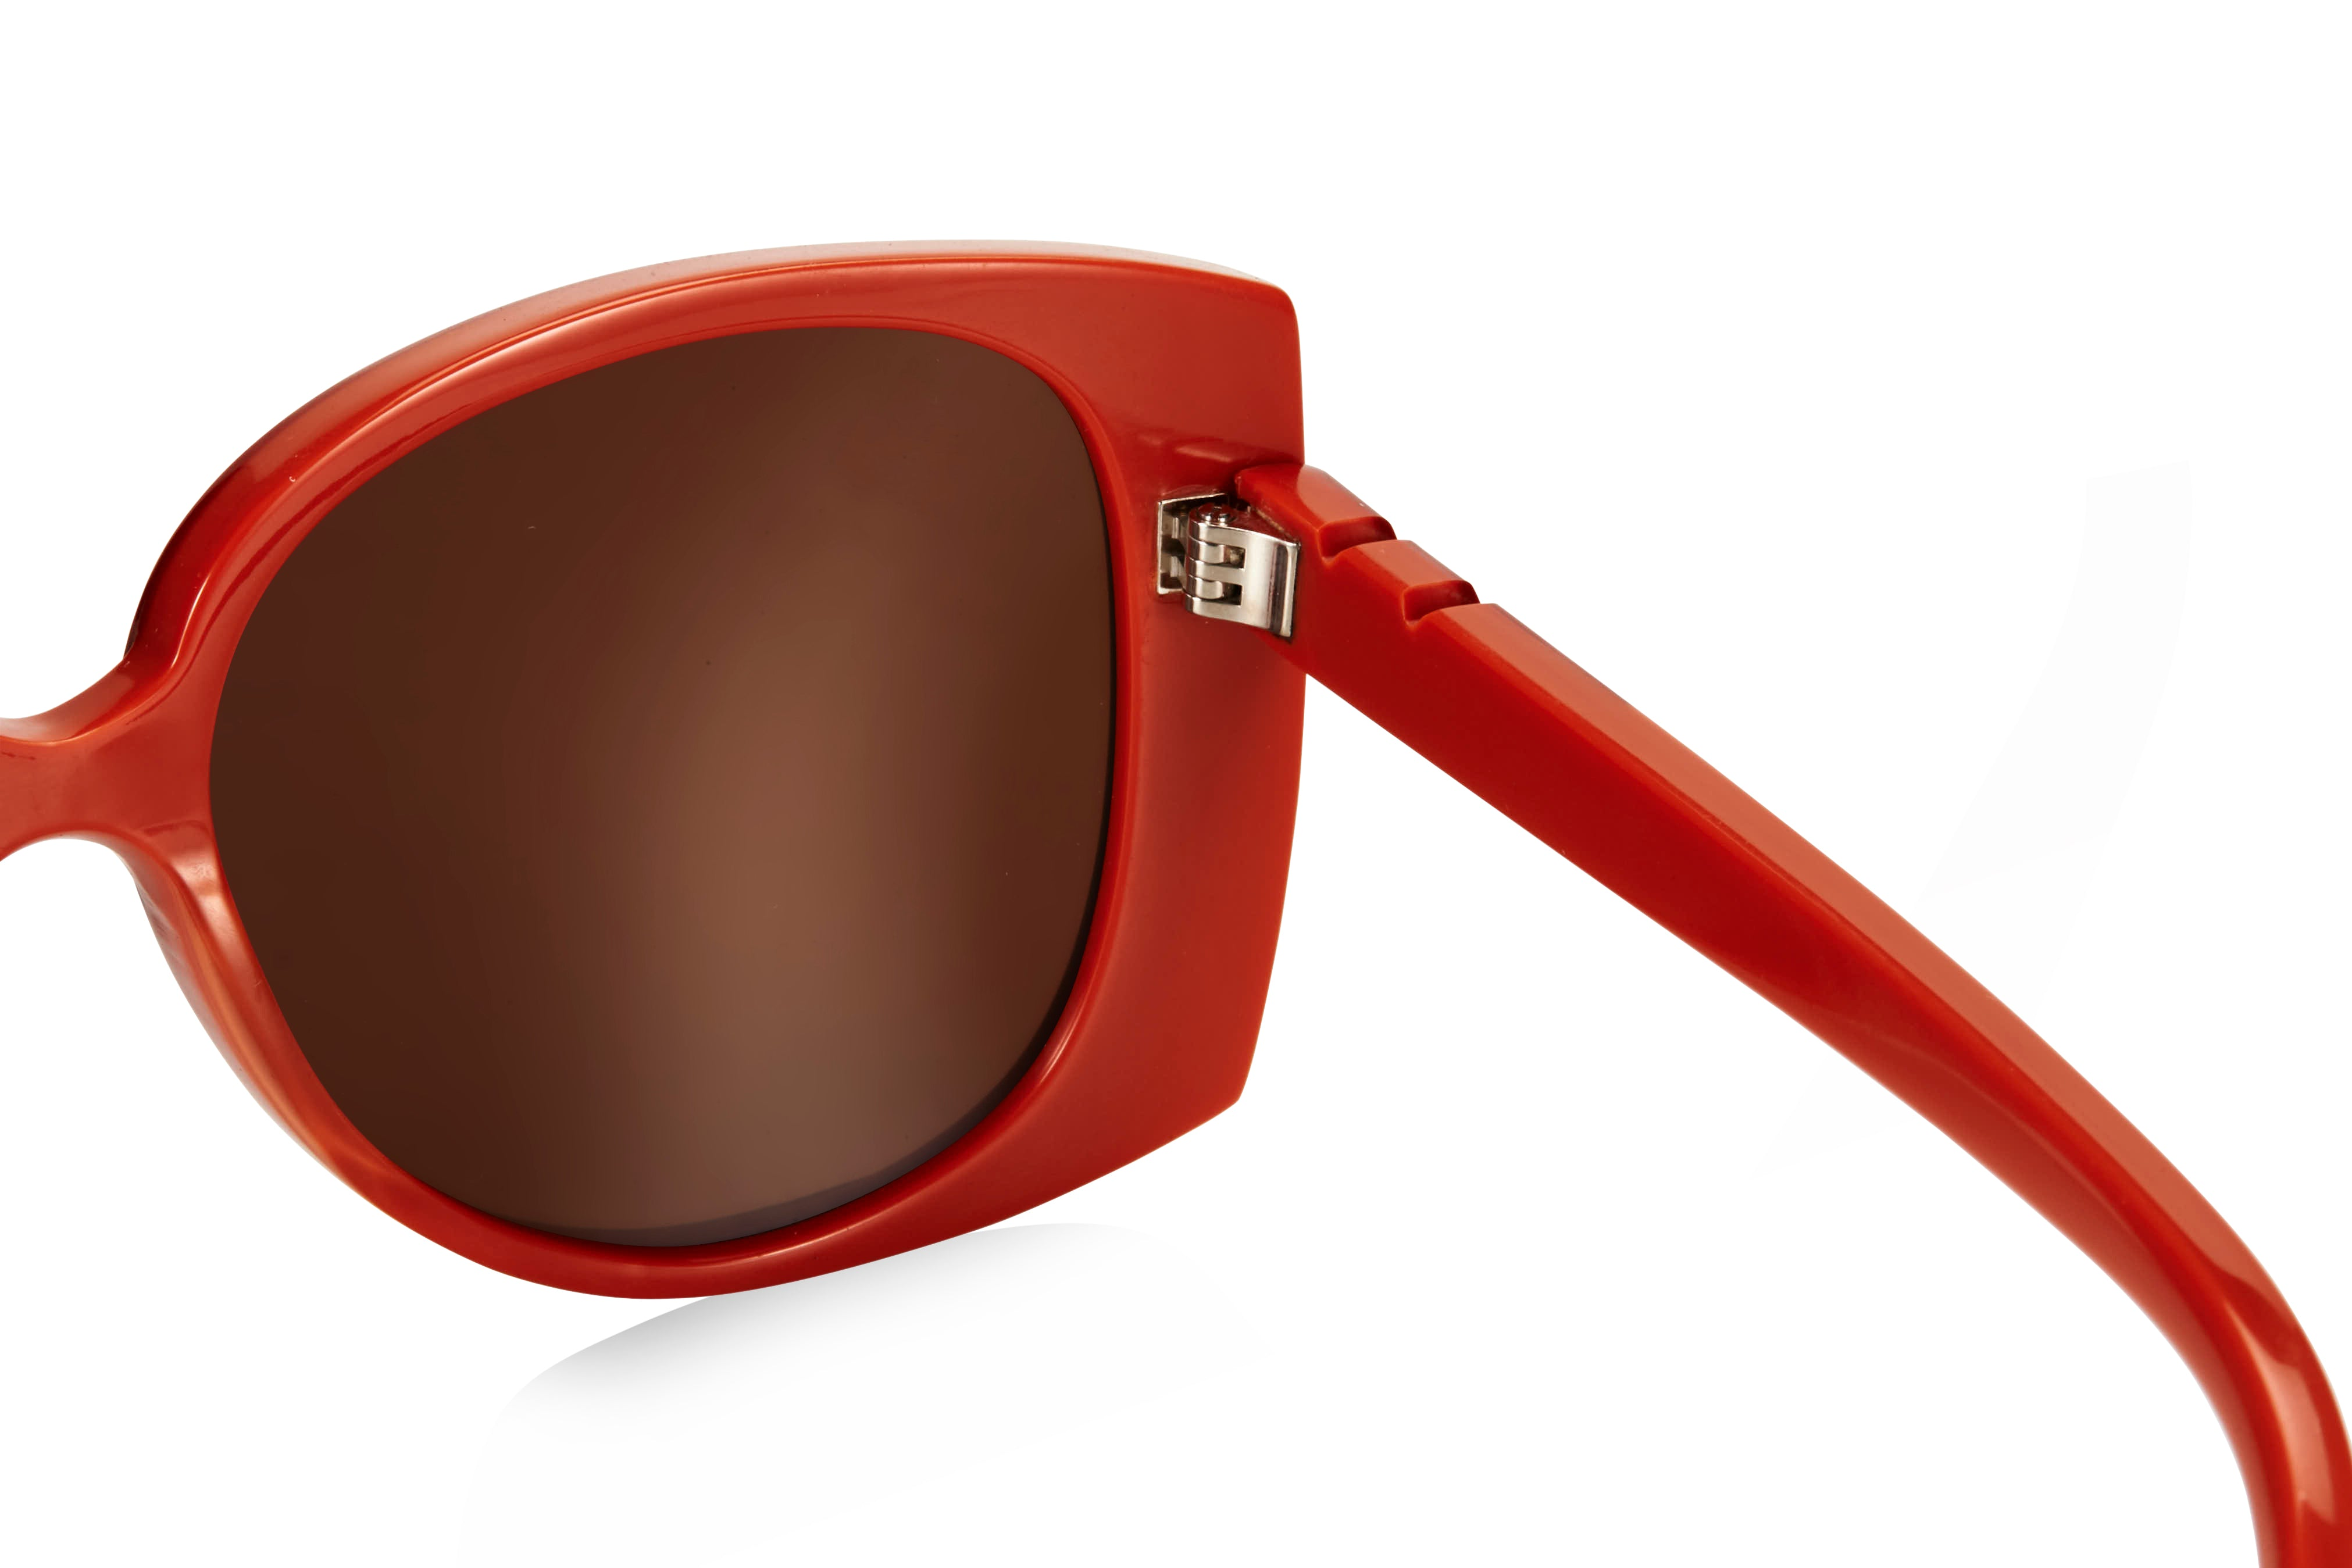 Pared Sunglasses - Salty Blonde Capsule Collection - Bright & Early